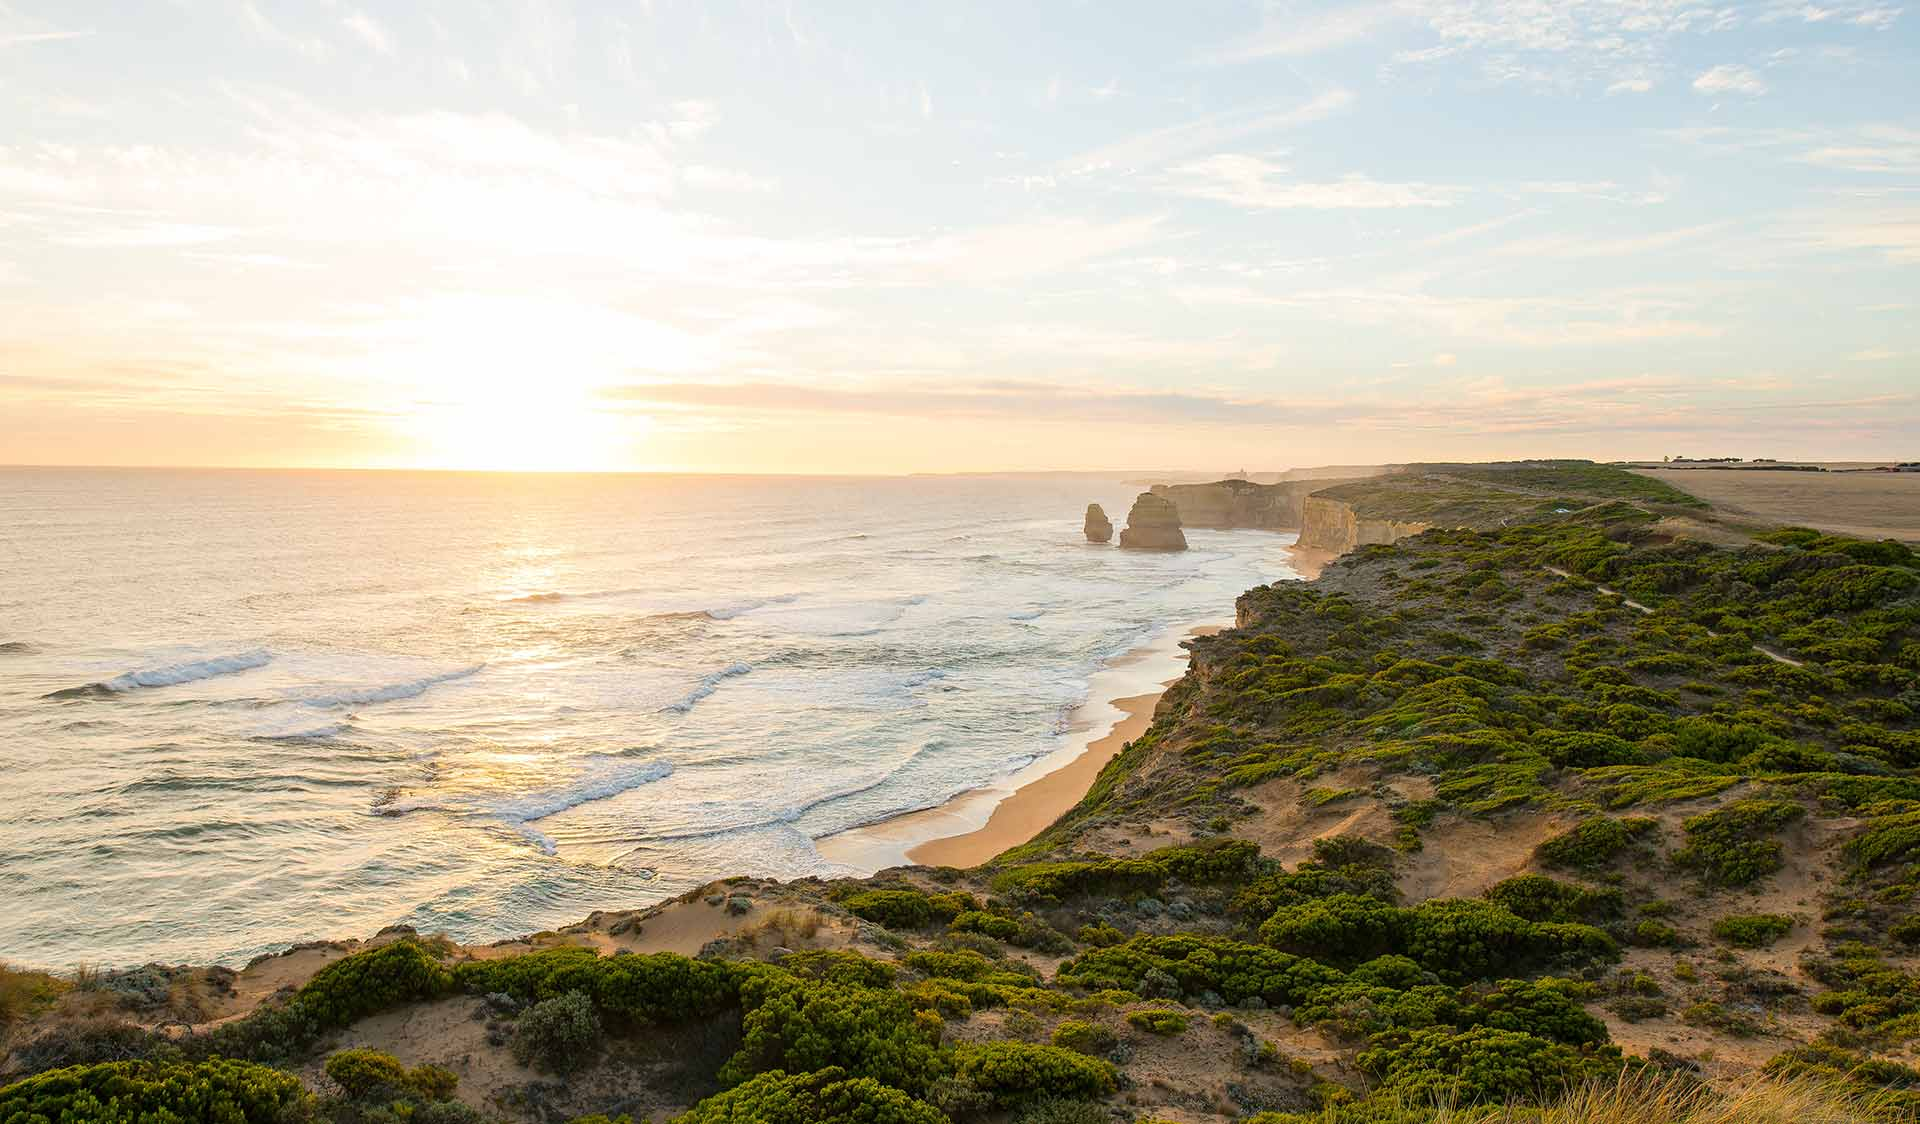 Coastal landscape photo of Port Campbell National Park taken at sunset